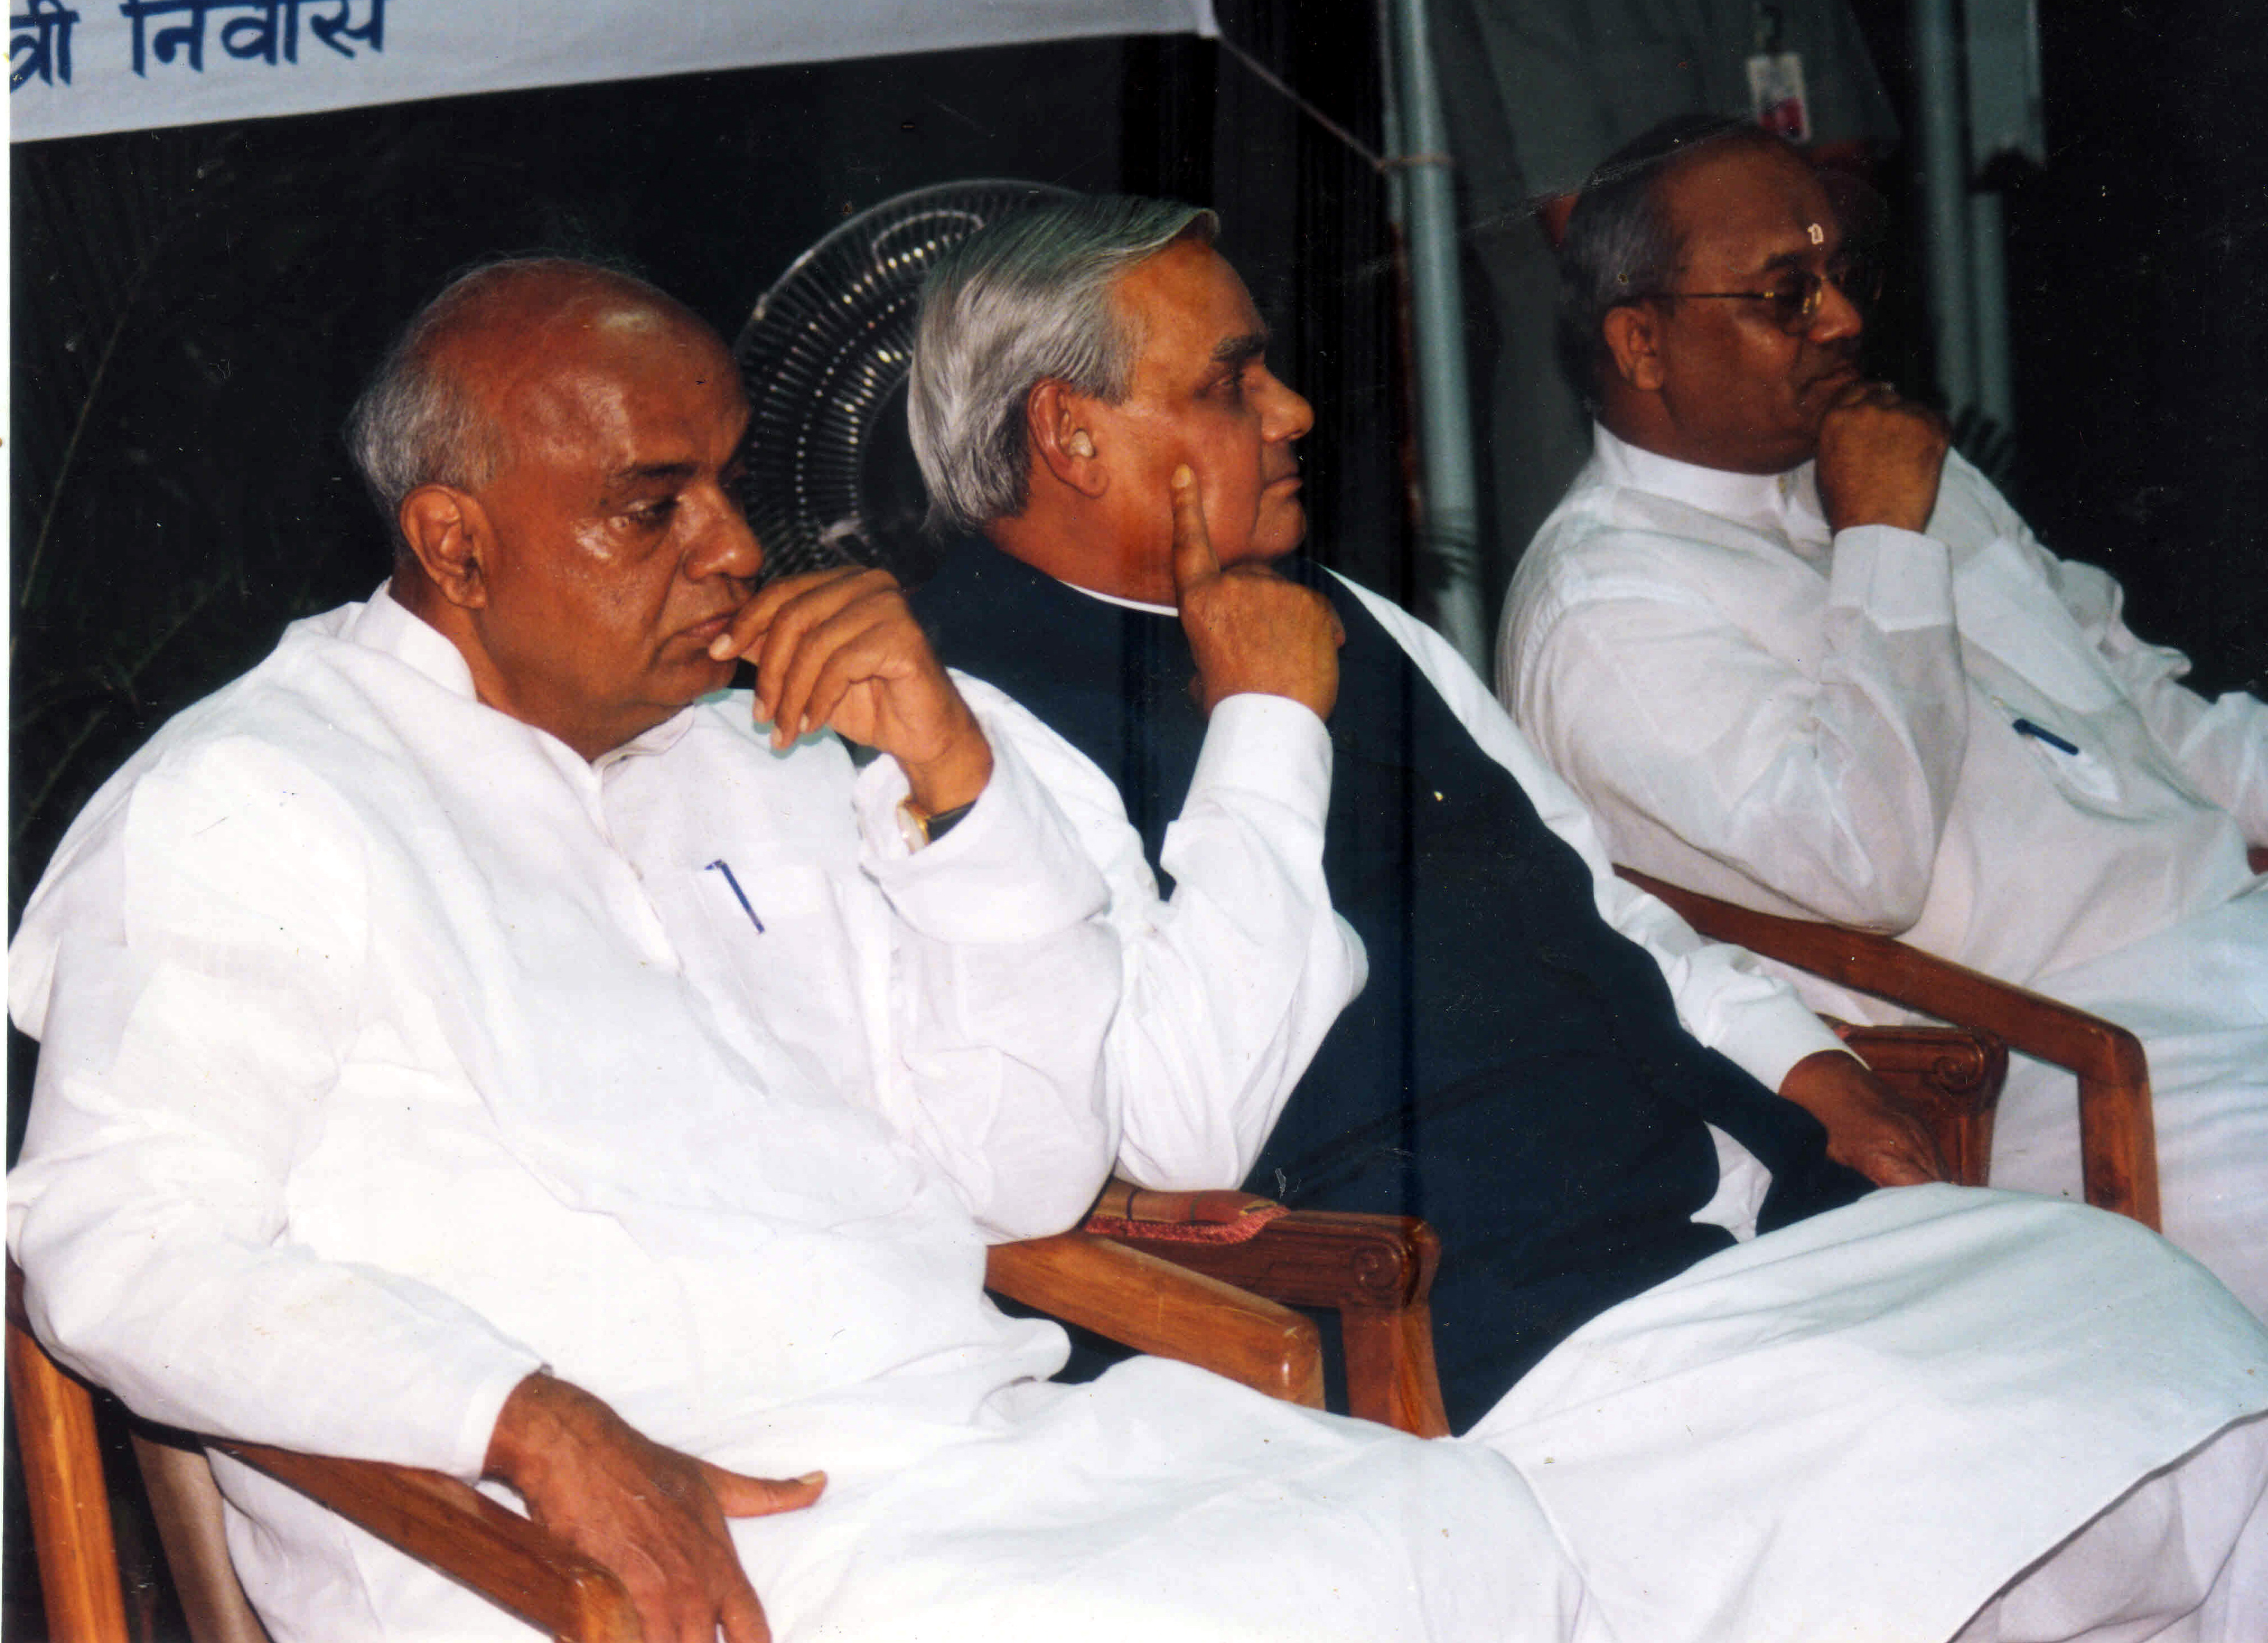 It was Atal ji's Hindi proficiency that helped him become PM'